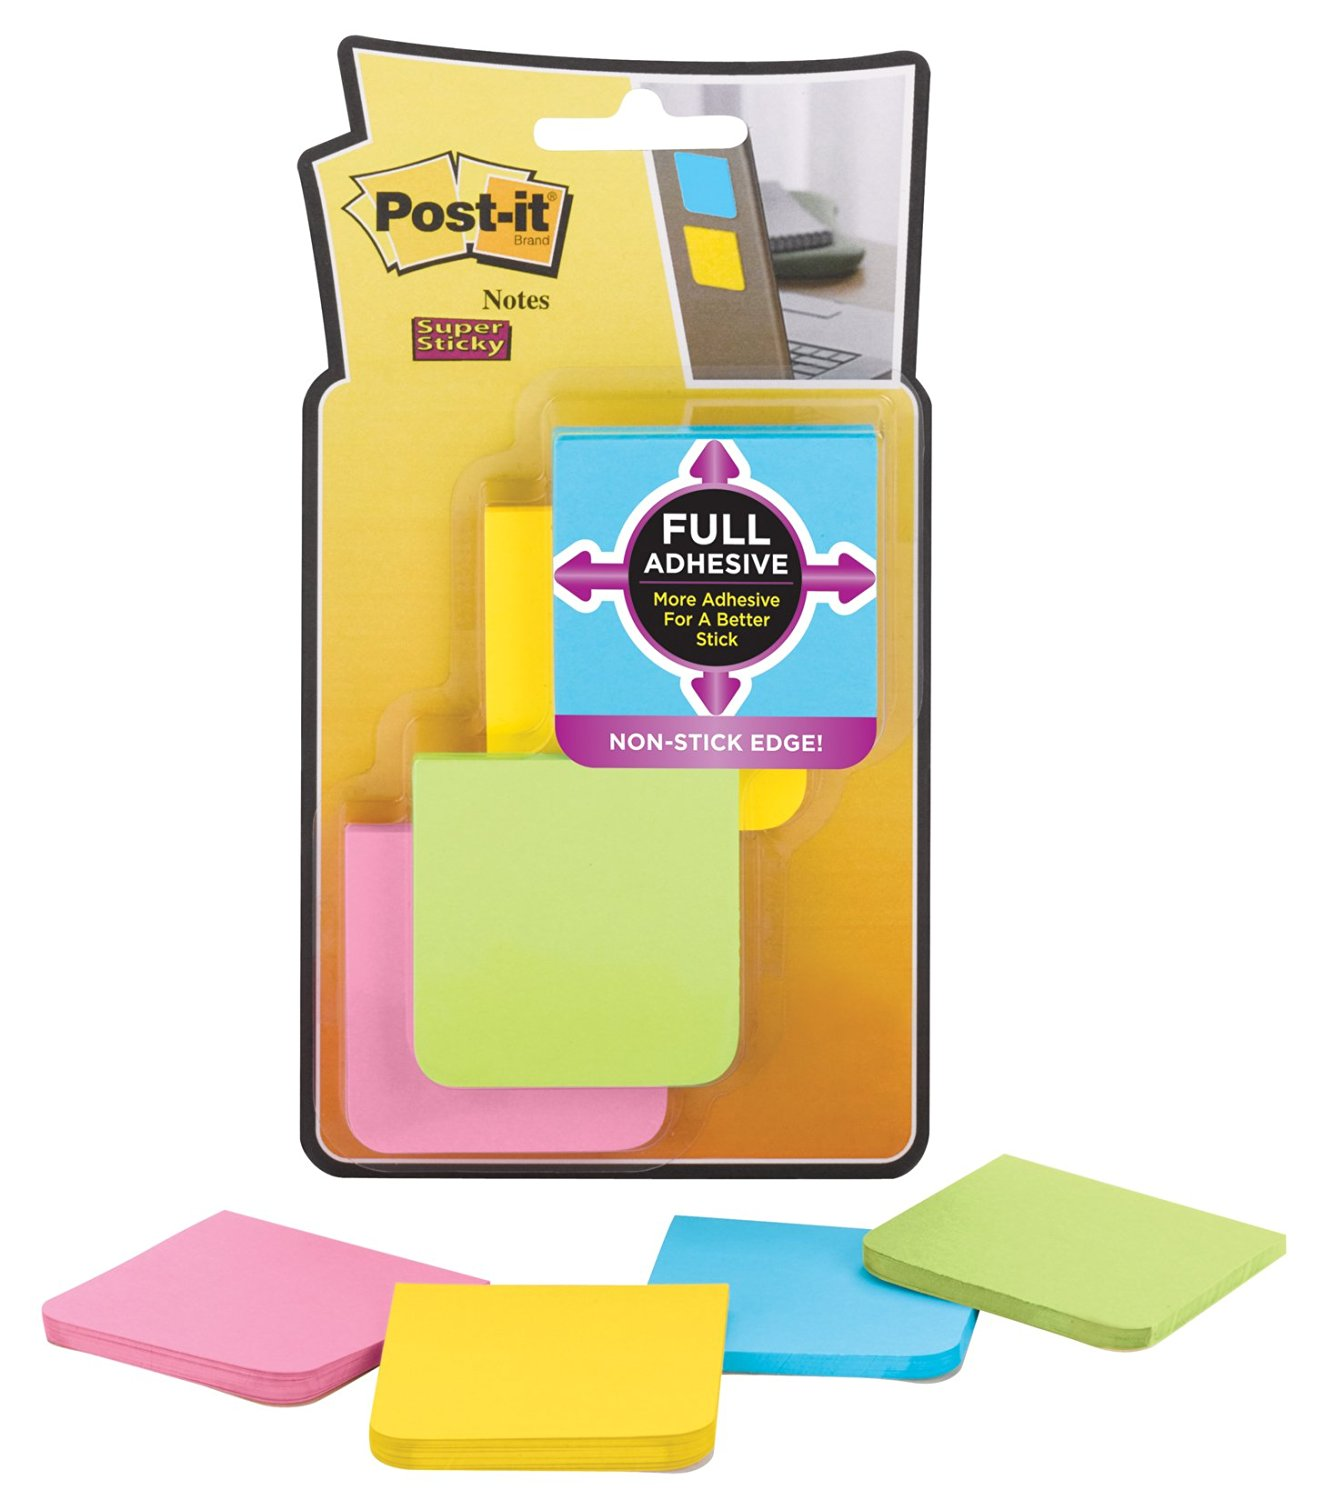 "Wholesale CASE of 25 - 3M Post-it Super Sticky Full Adhesive Notes-Super Sticky Notes, Full Adhesive, 2""x2"", 8/PK, Assorted"